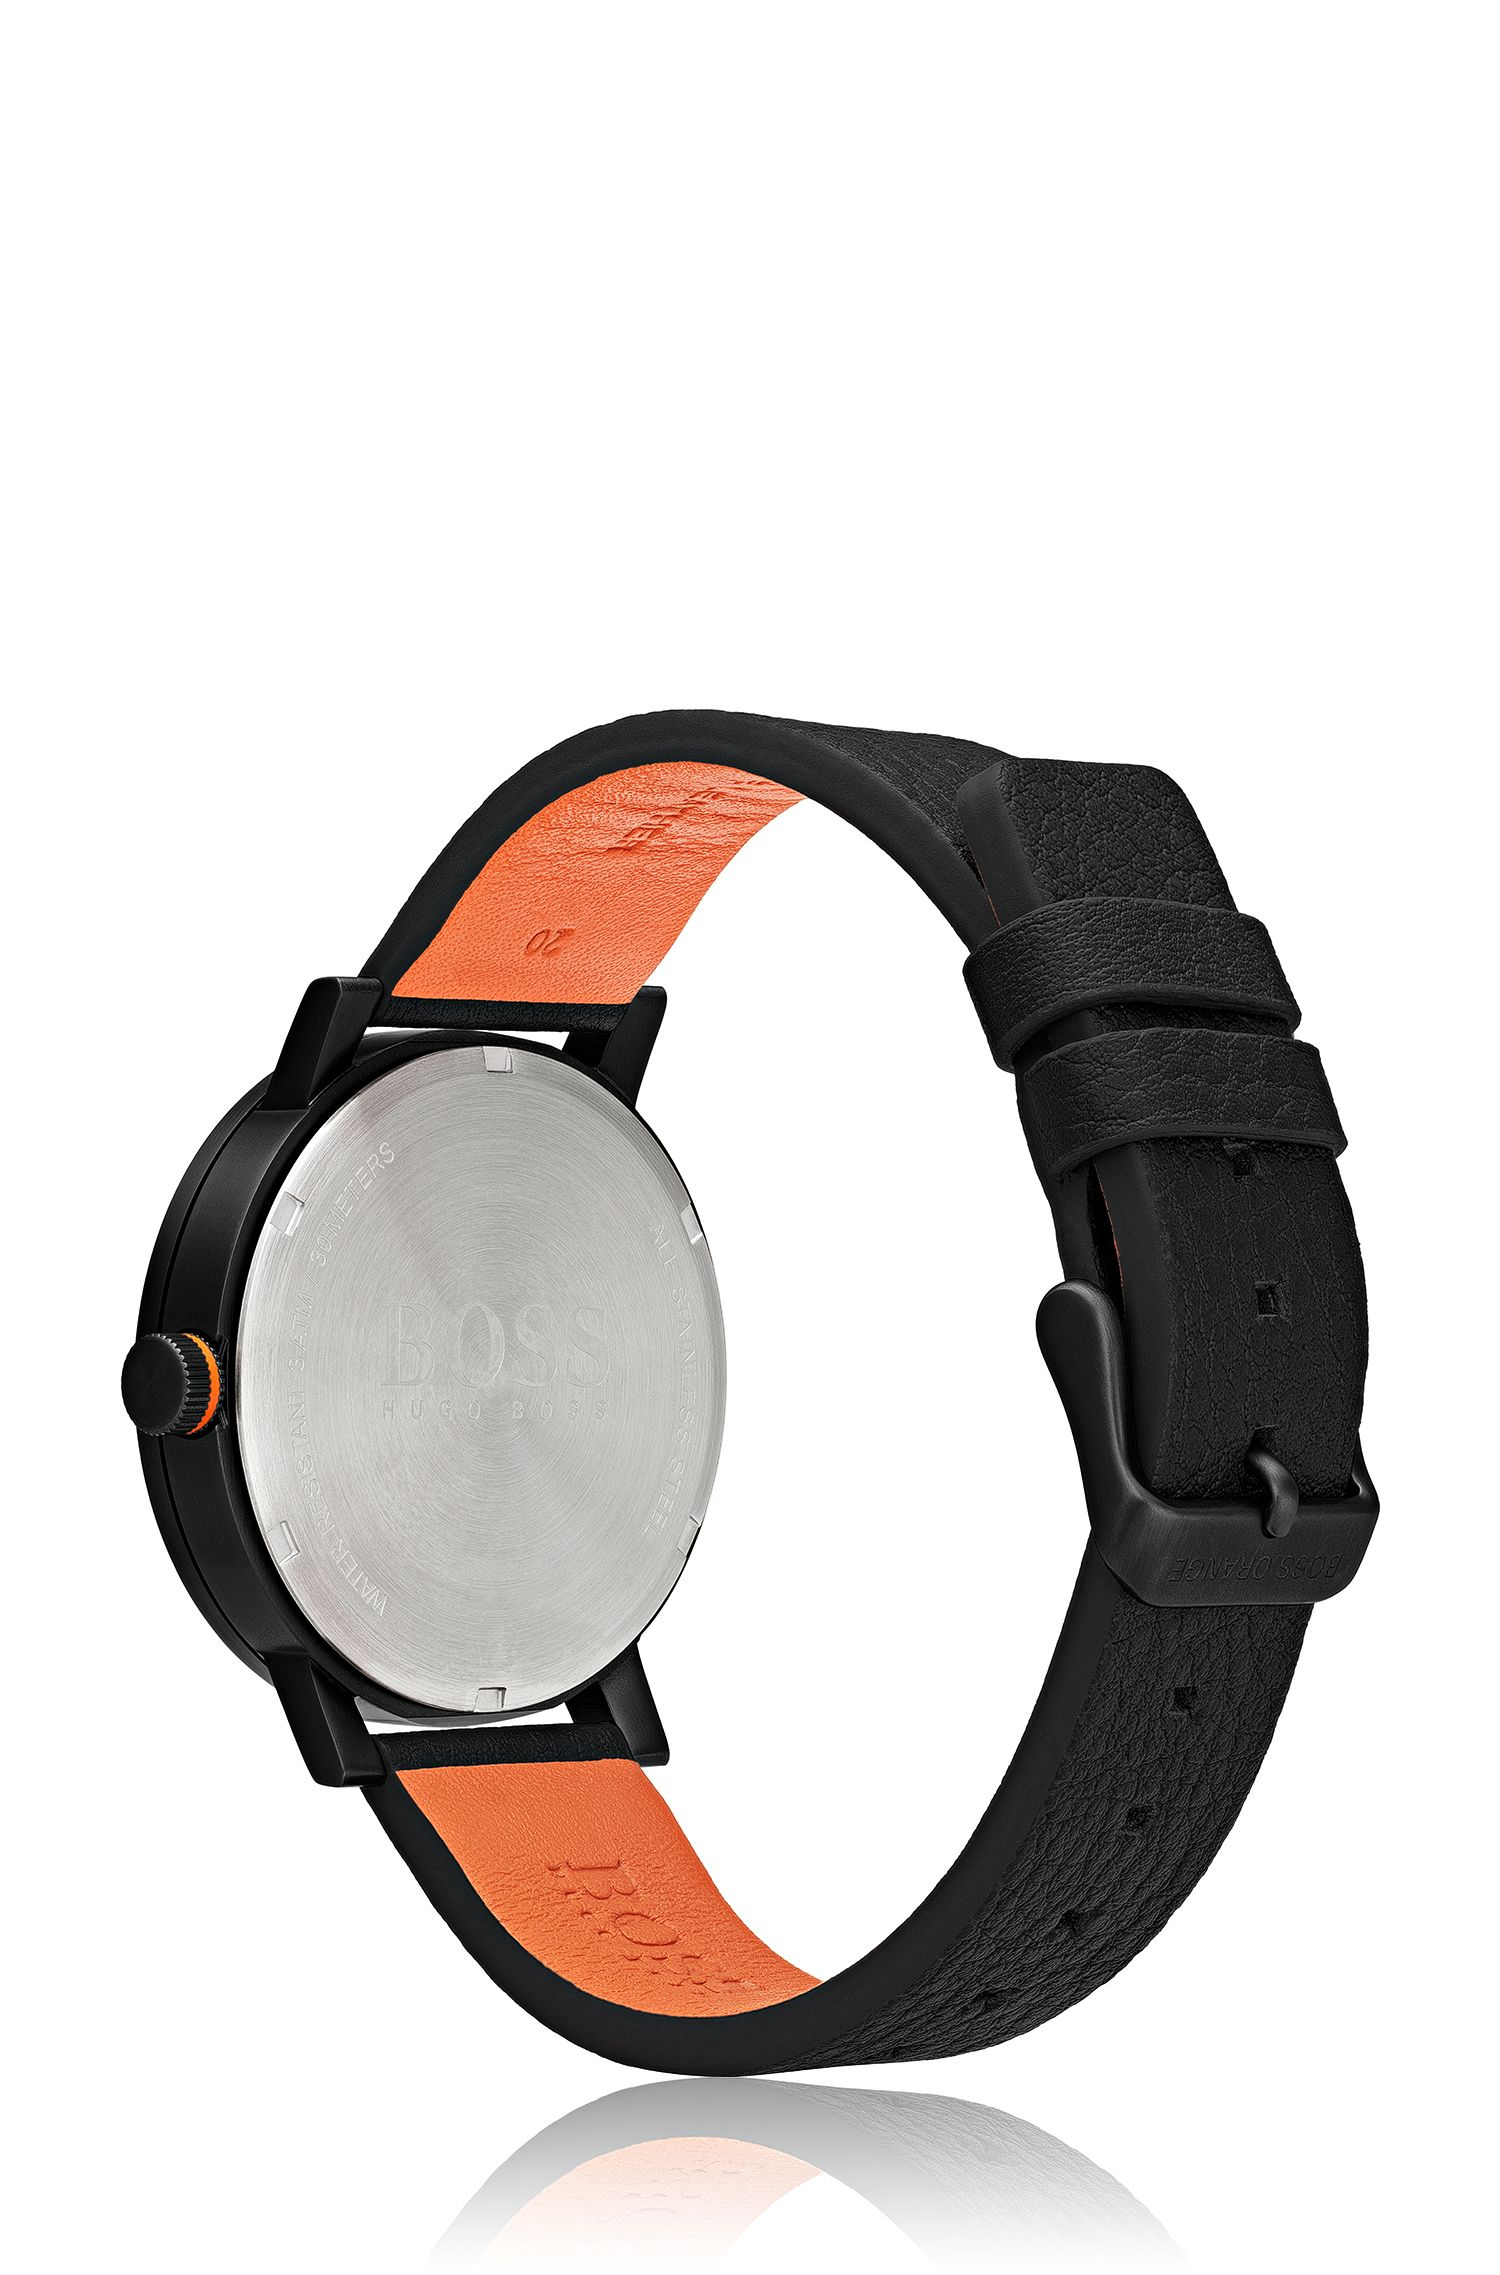 Leather-strap watch with contrast hands and black dial